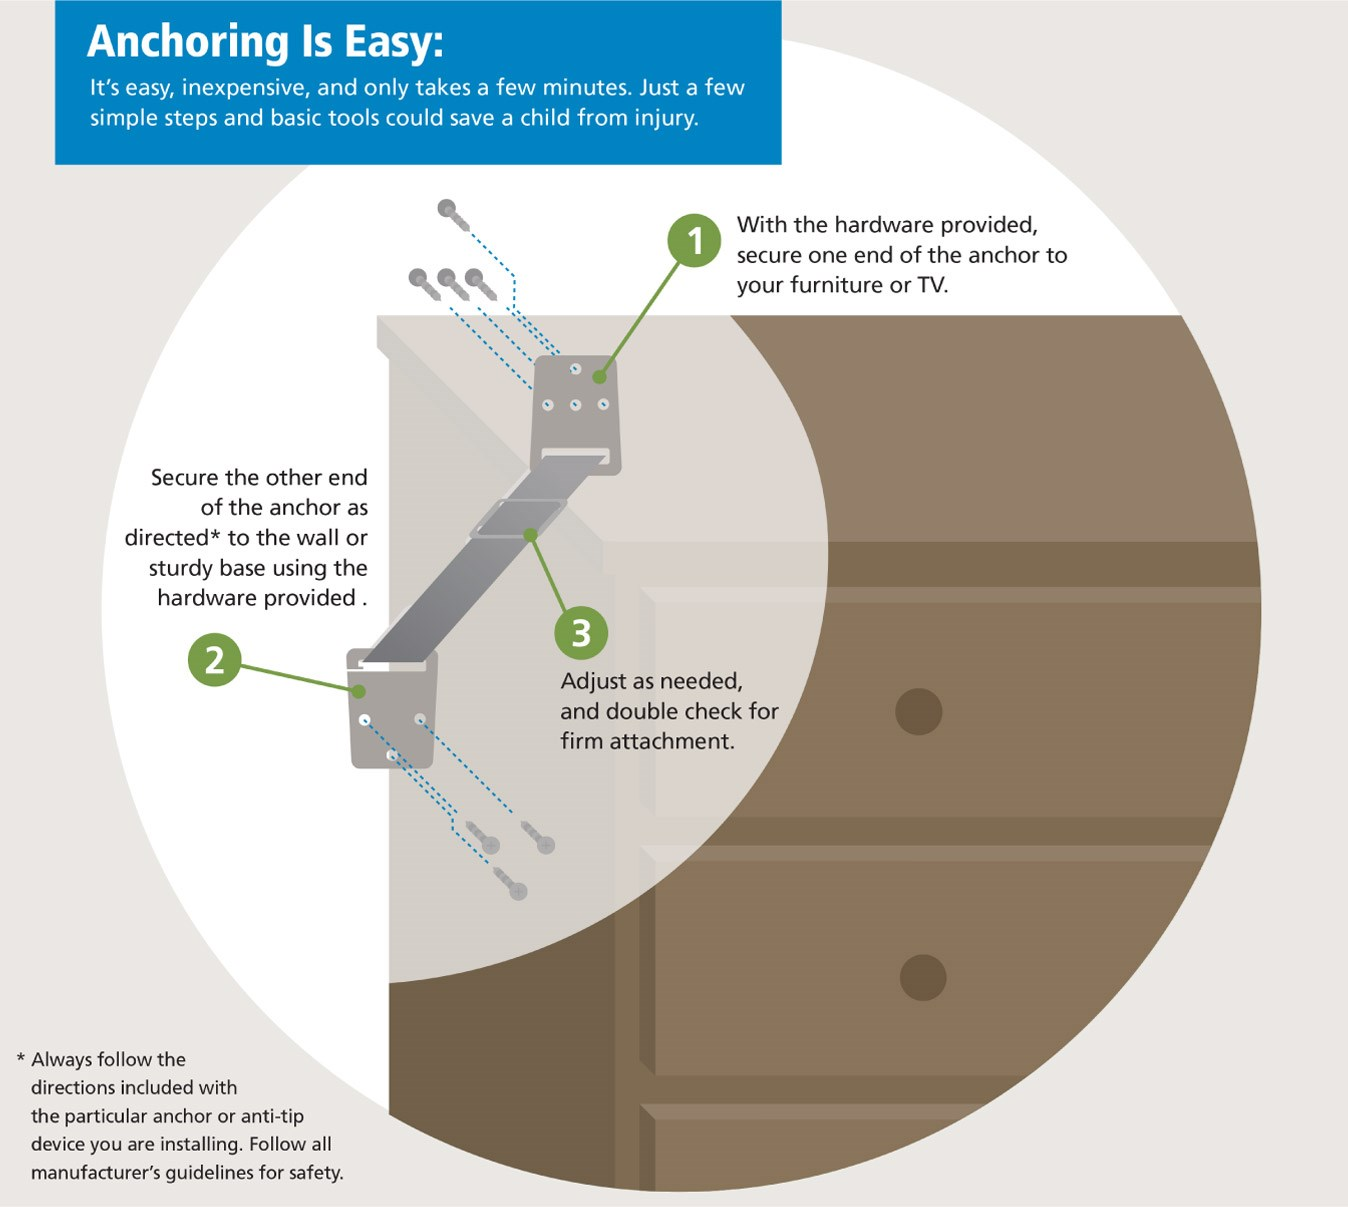 How to anchor your furniture